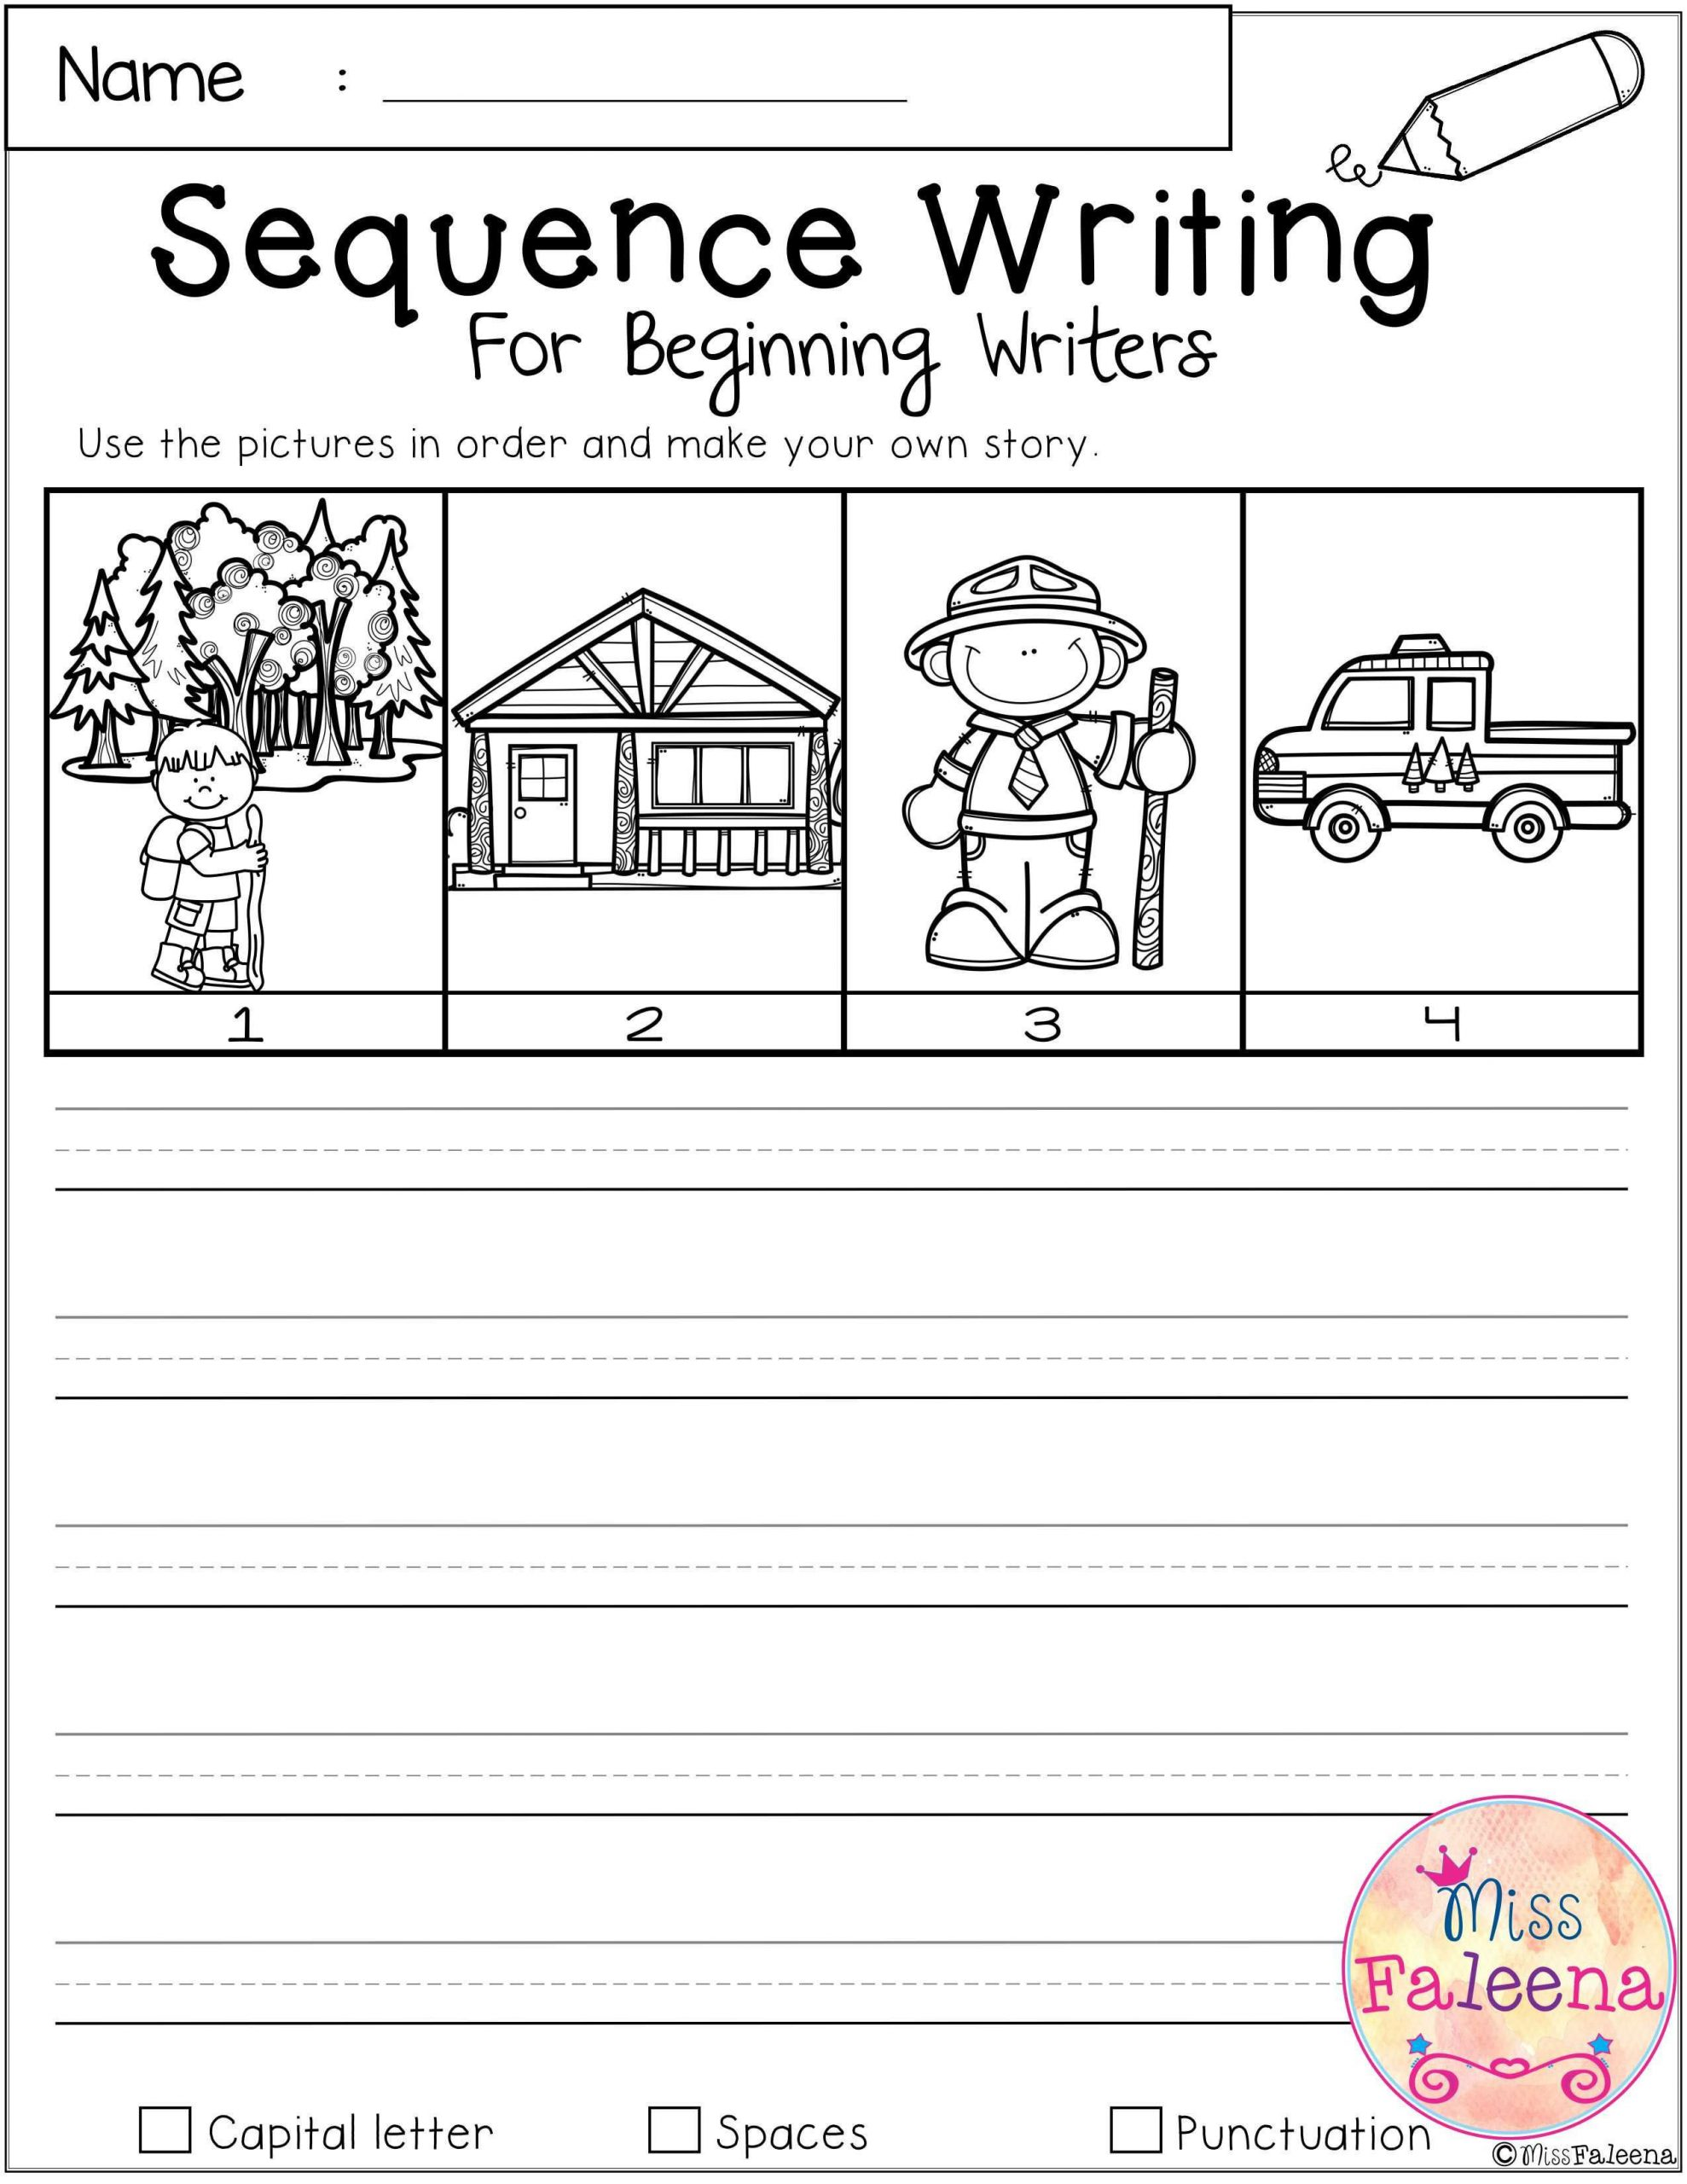 First Grade Sequencing Worksheets September Sequence Writing for Beginning Writers